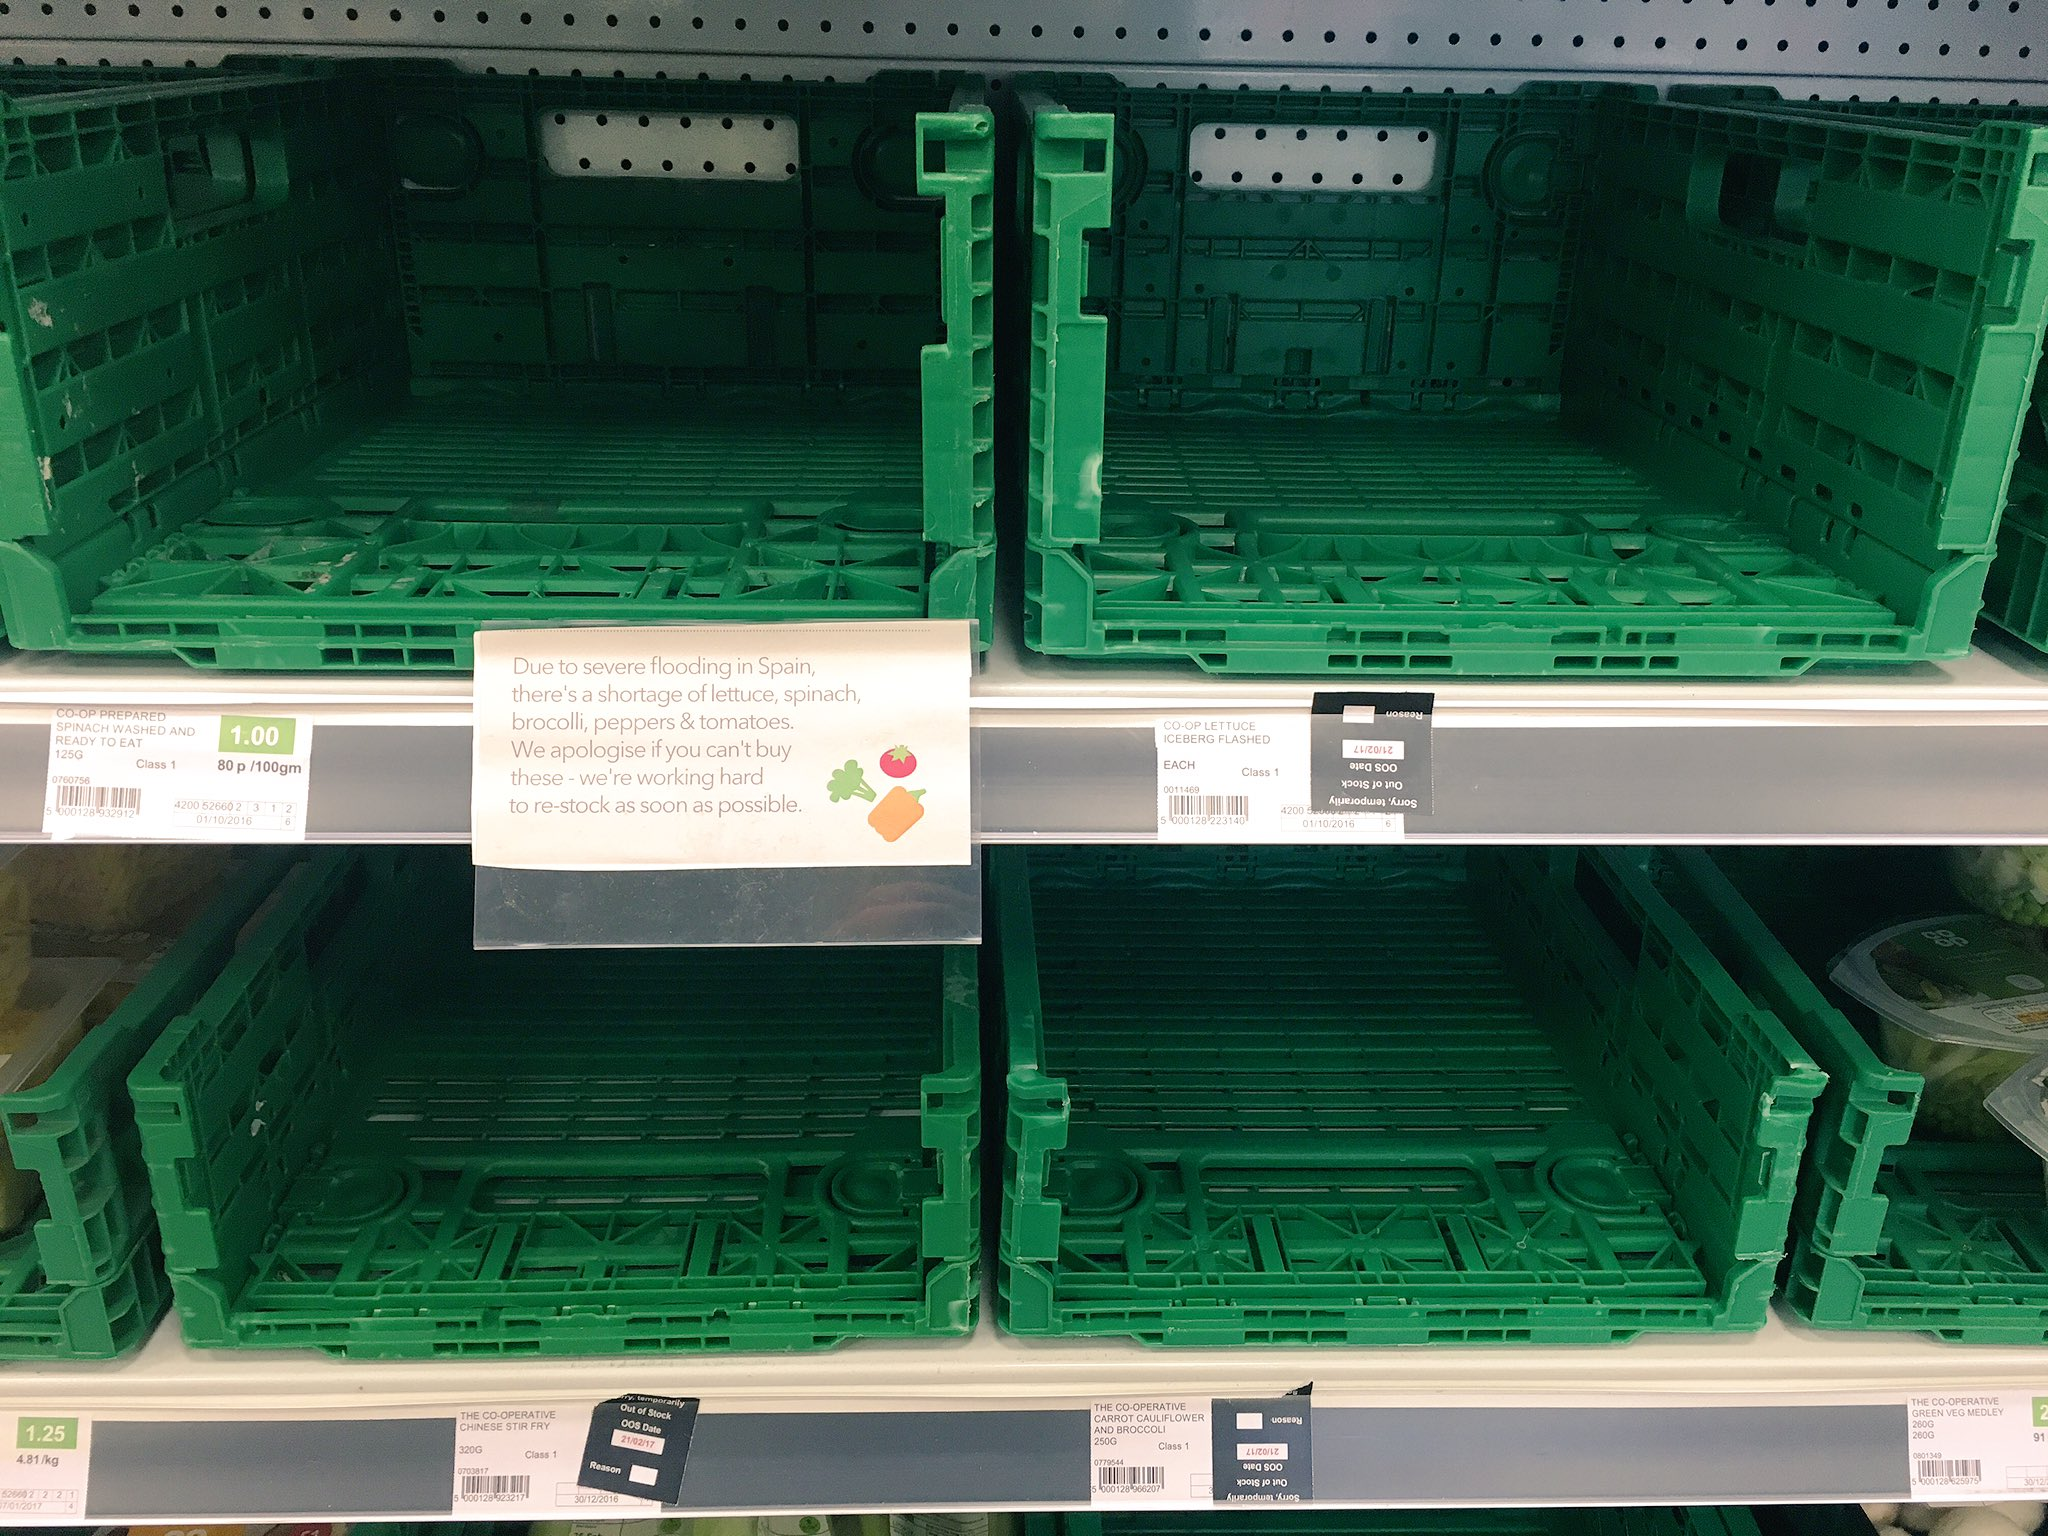 Scenes in my local: Due to shortage of lettuce, spinach, broccoli, peppers AND tomatoes it might be time to start thinking #local https://t.co/uMykzs4IbL